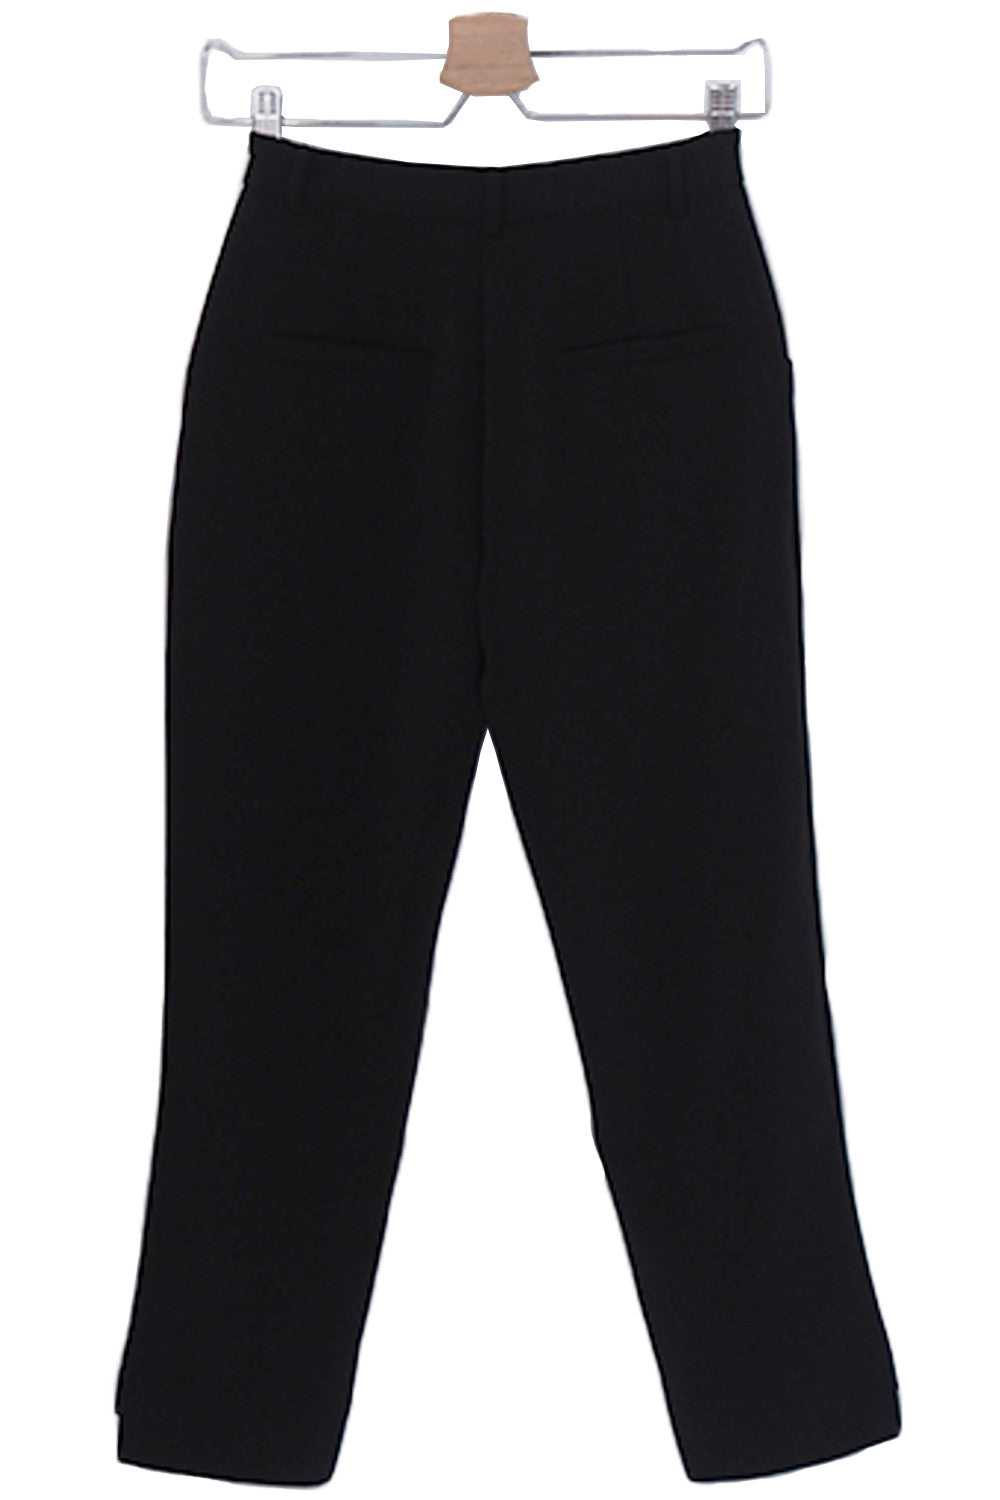 Black Hi-low Crop Tailor Trousers